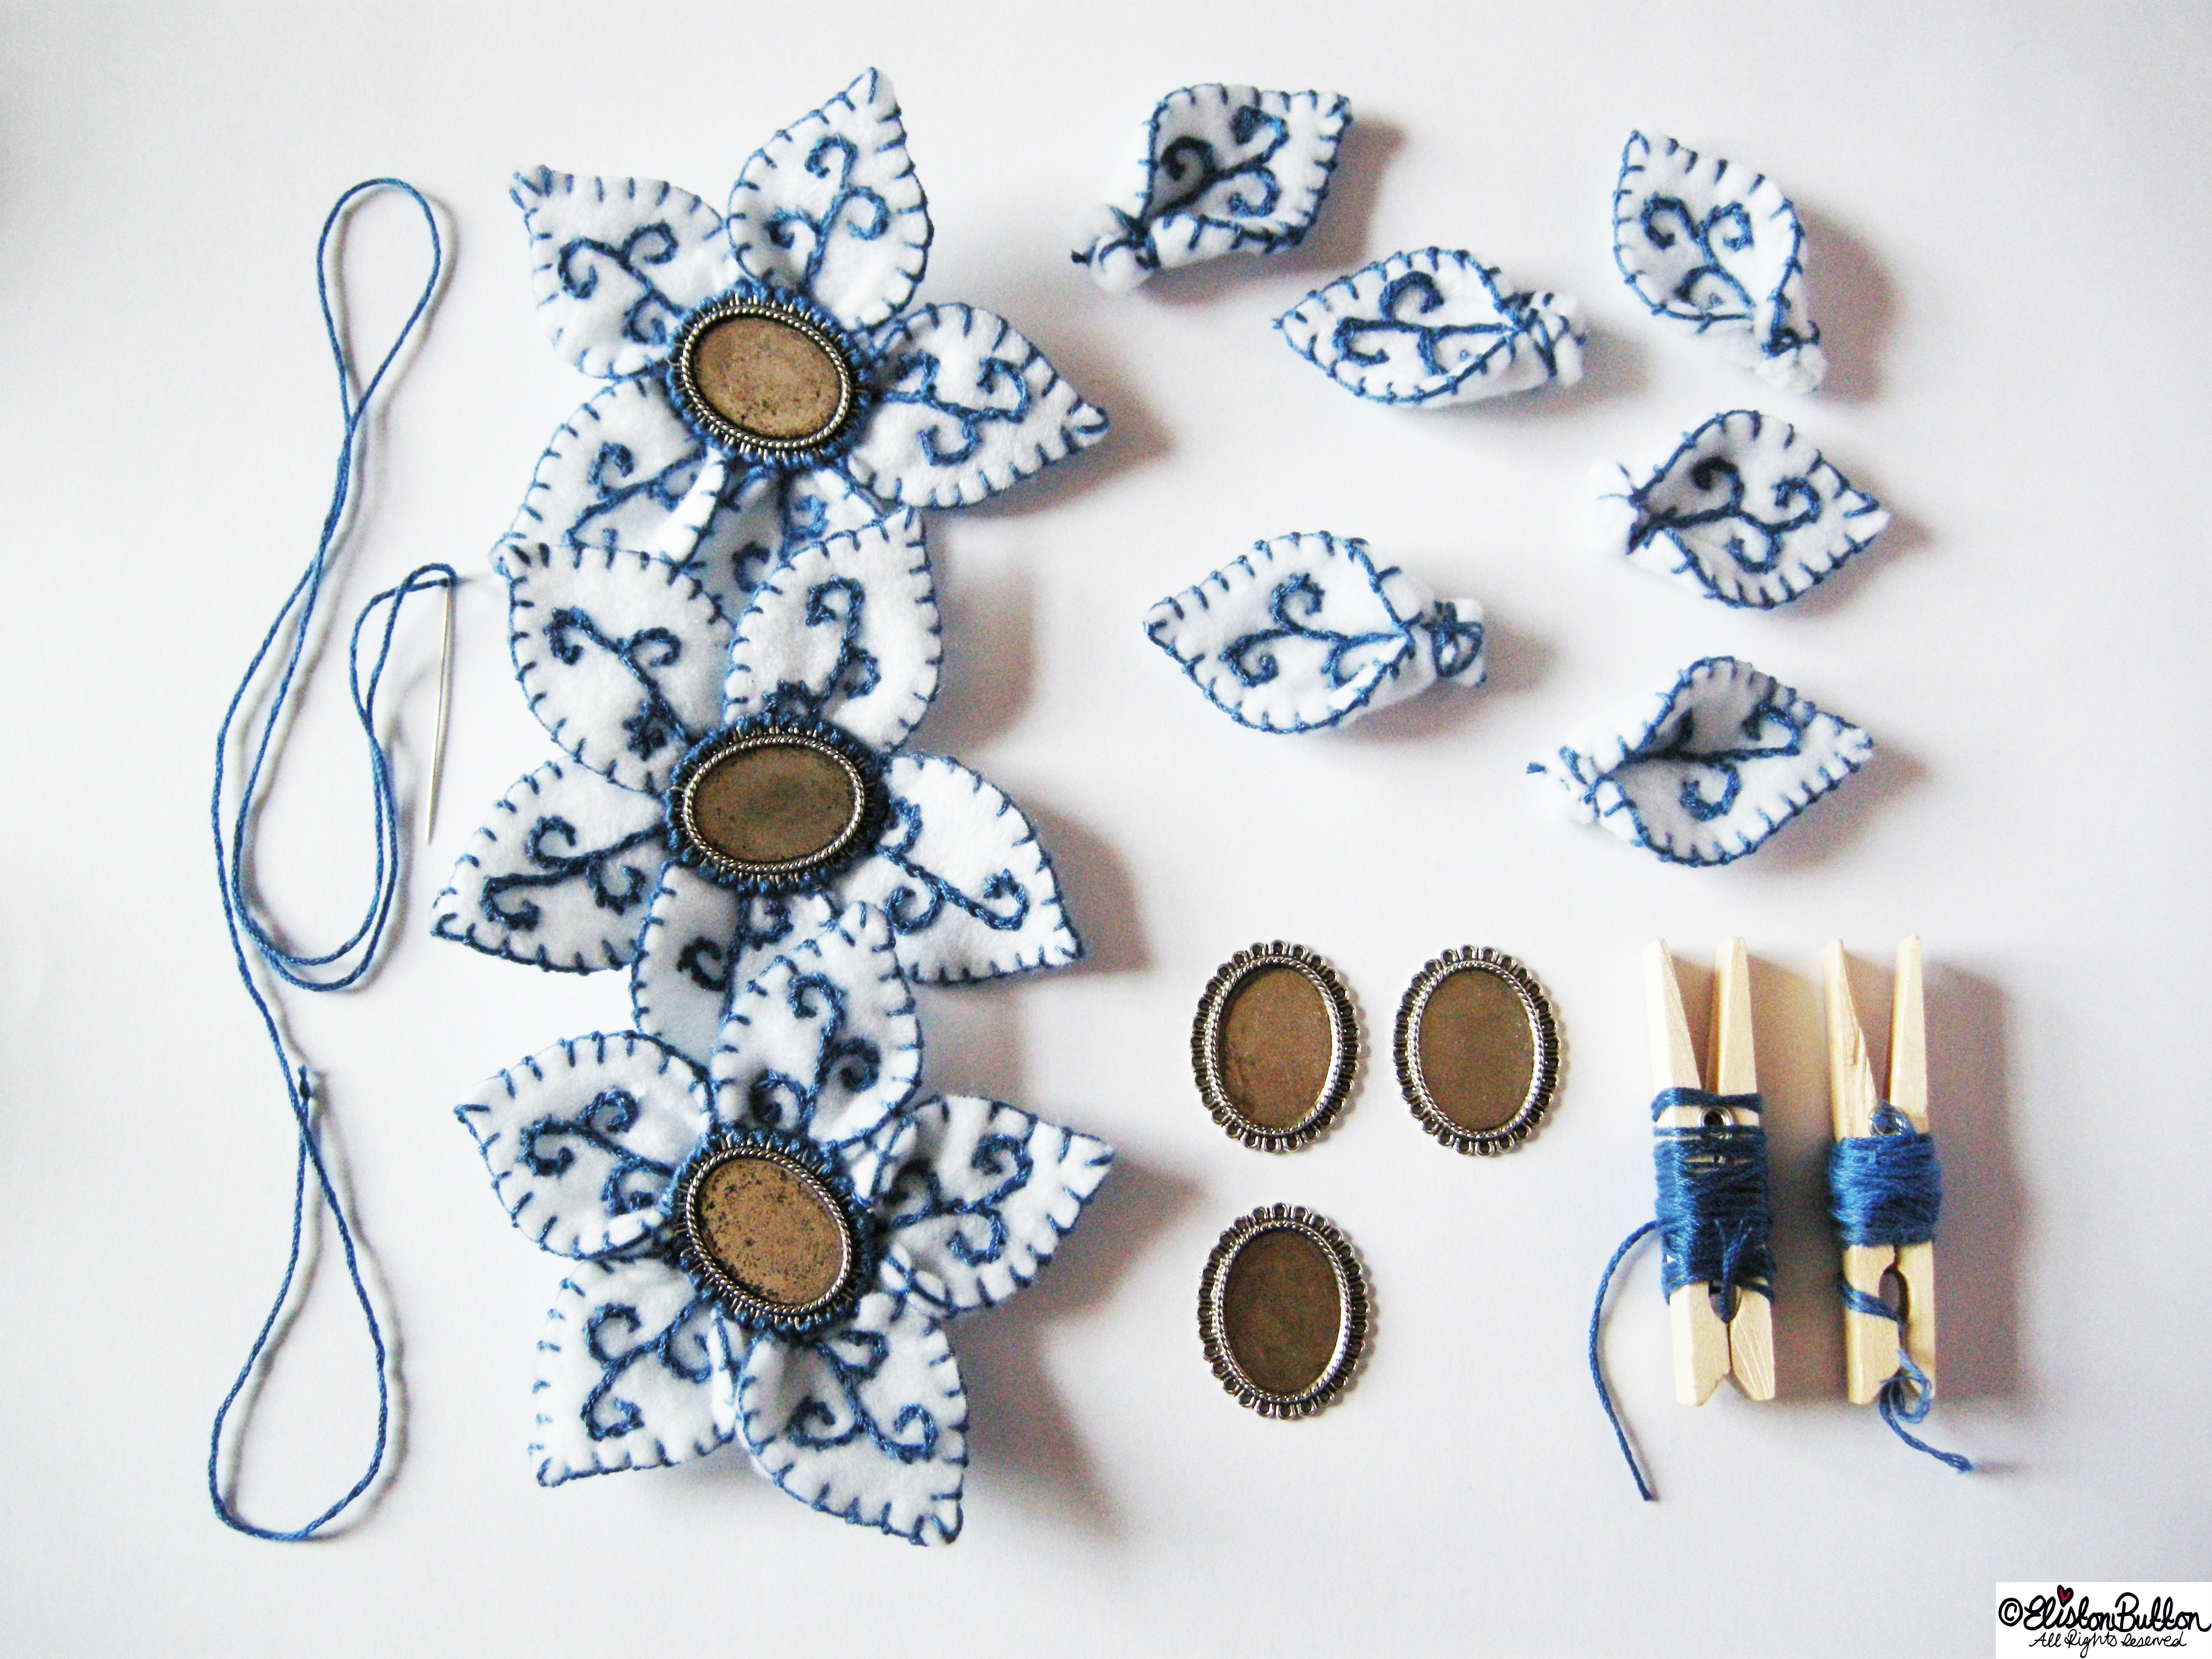 Blue and White Embroidered Felt Flowers with Sewing Bits and Bobs - Workspace Wednesday 'Blue & White' at www.elistonbutton.com - Eliston Button - That Crafty Kid – Art, Design, Craft & Adventure.